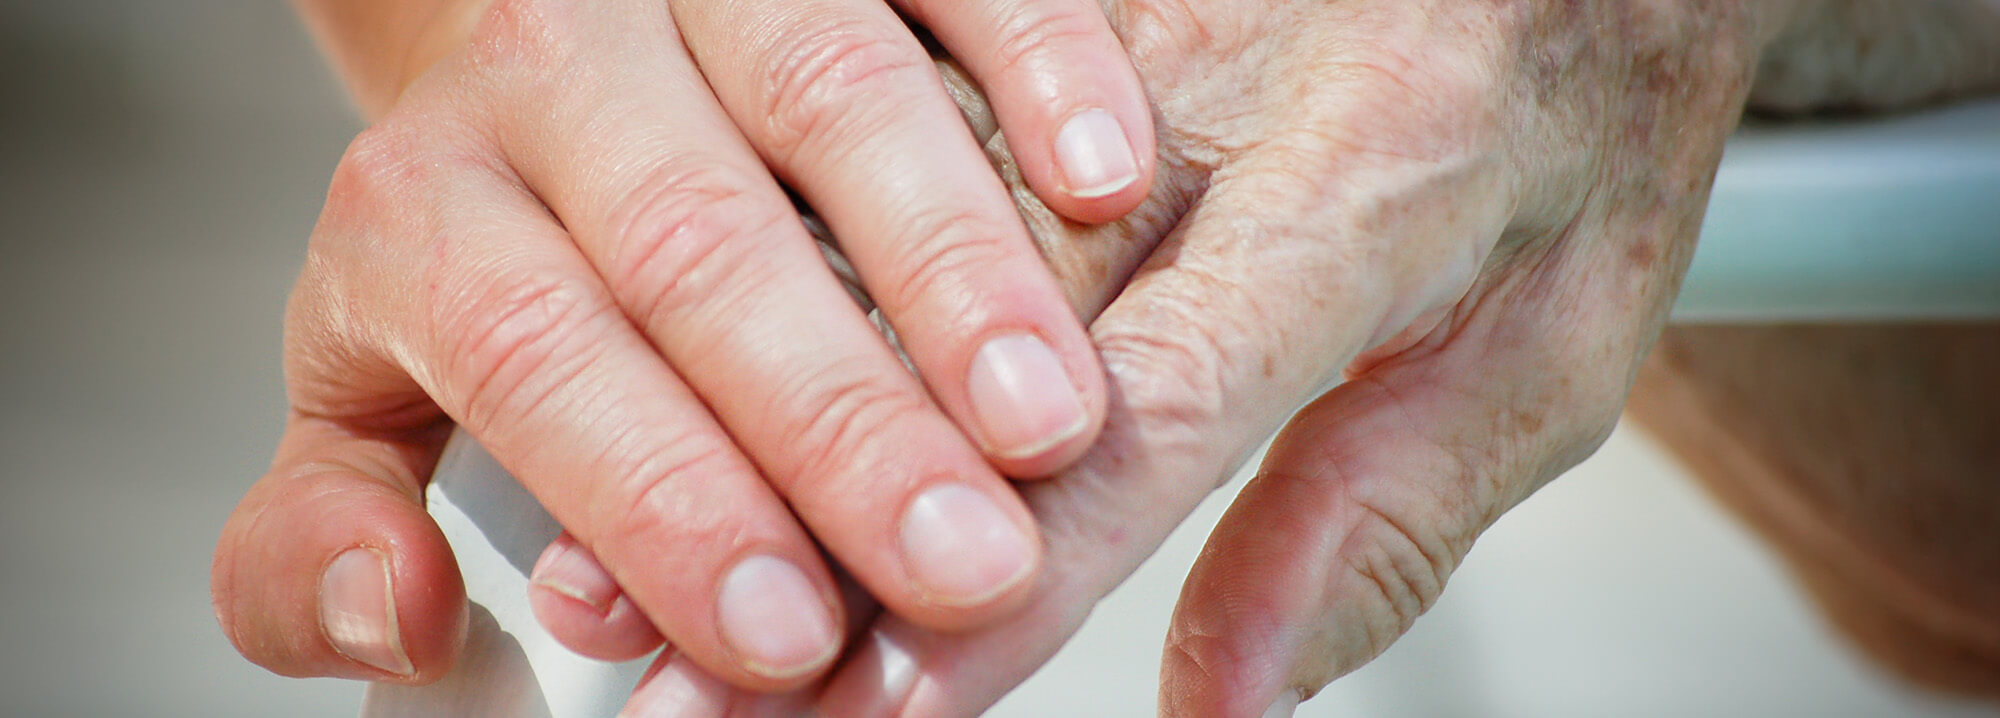 a younger hand over an older hand